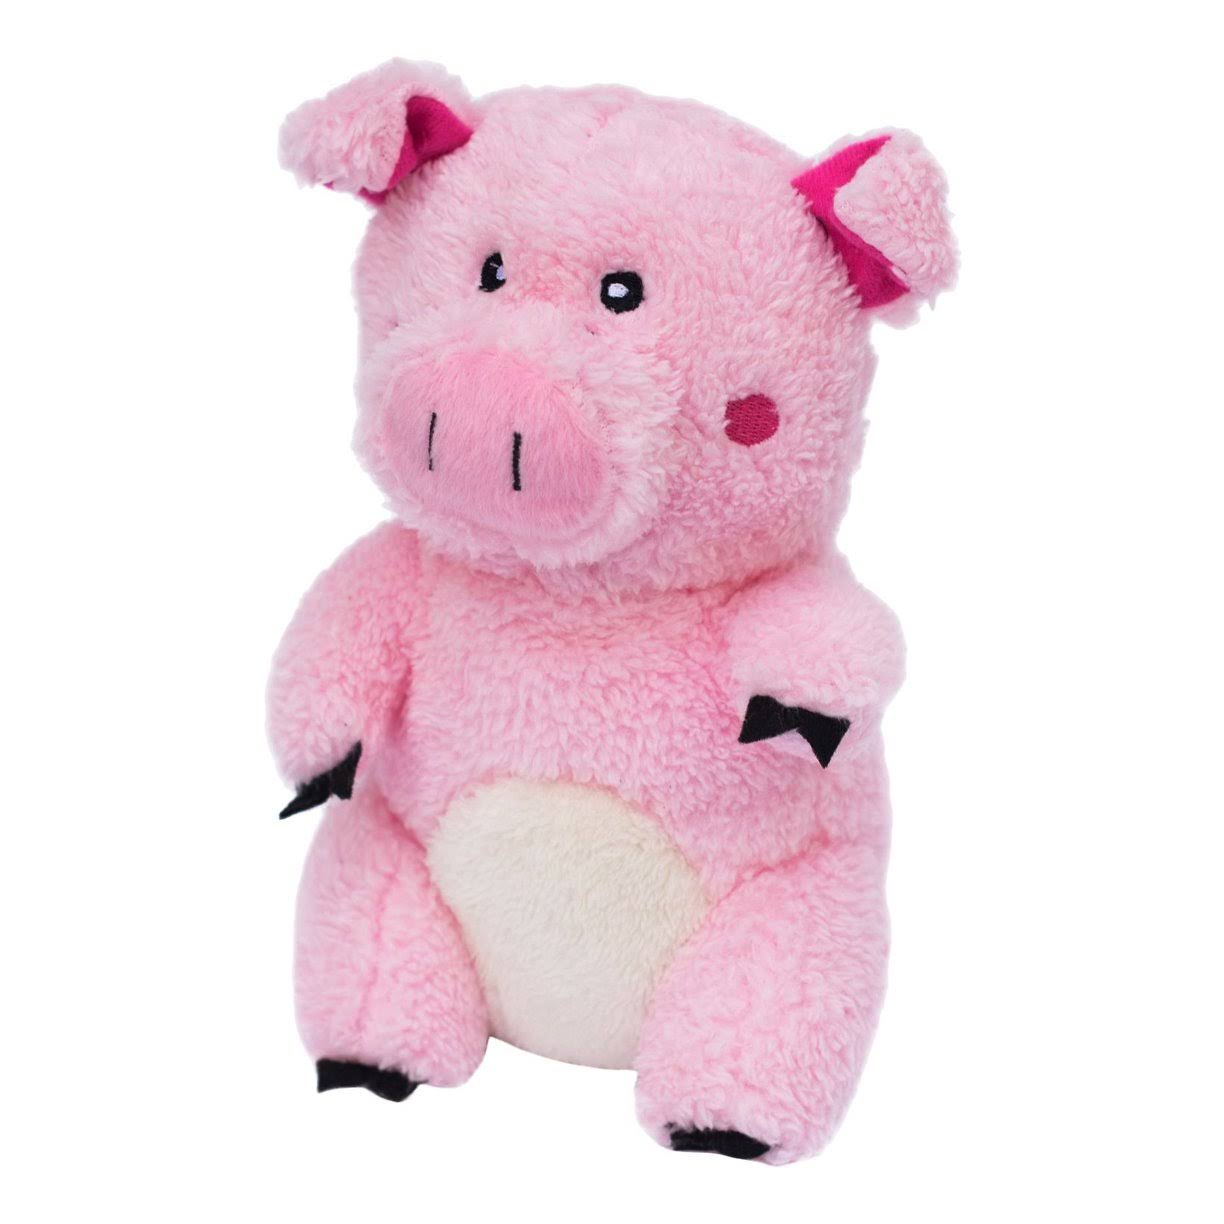 ZippyPaws Cheeky Chumz Plush Dog Toy, Pig